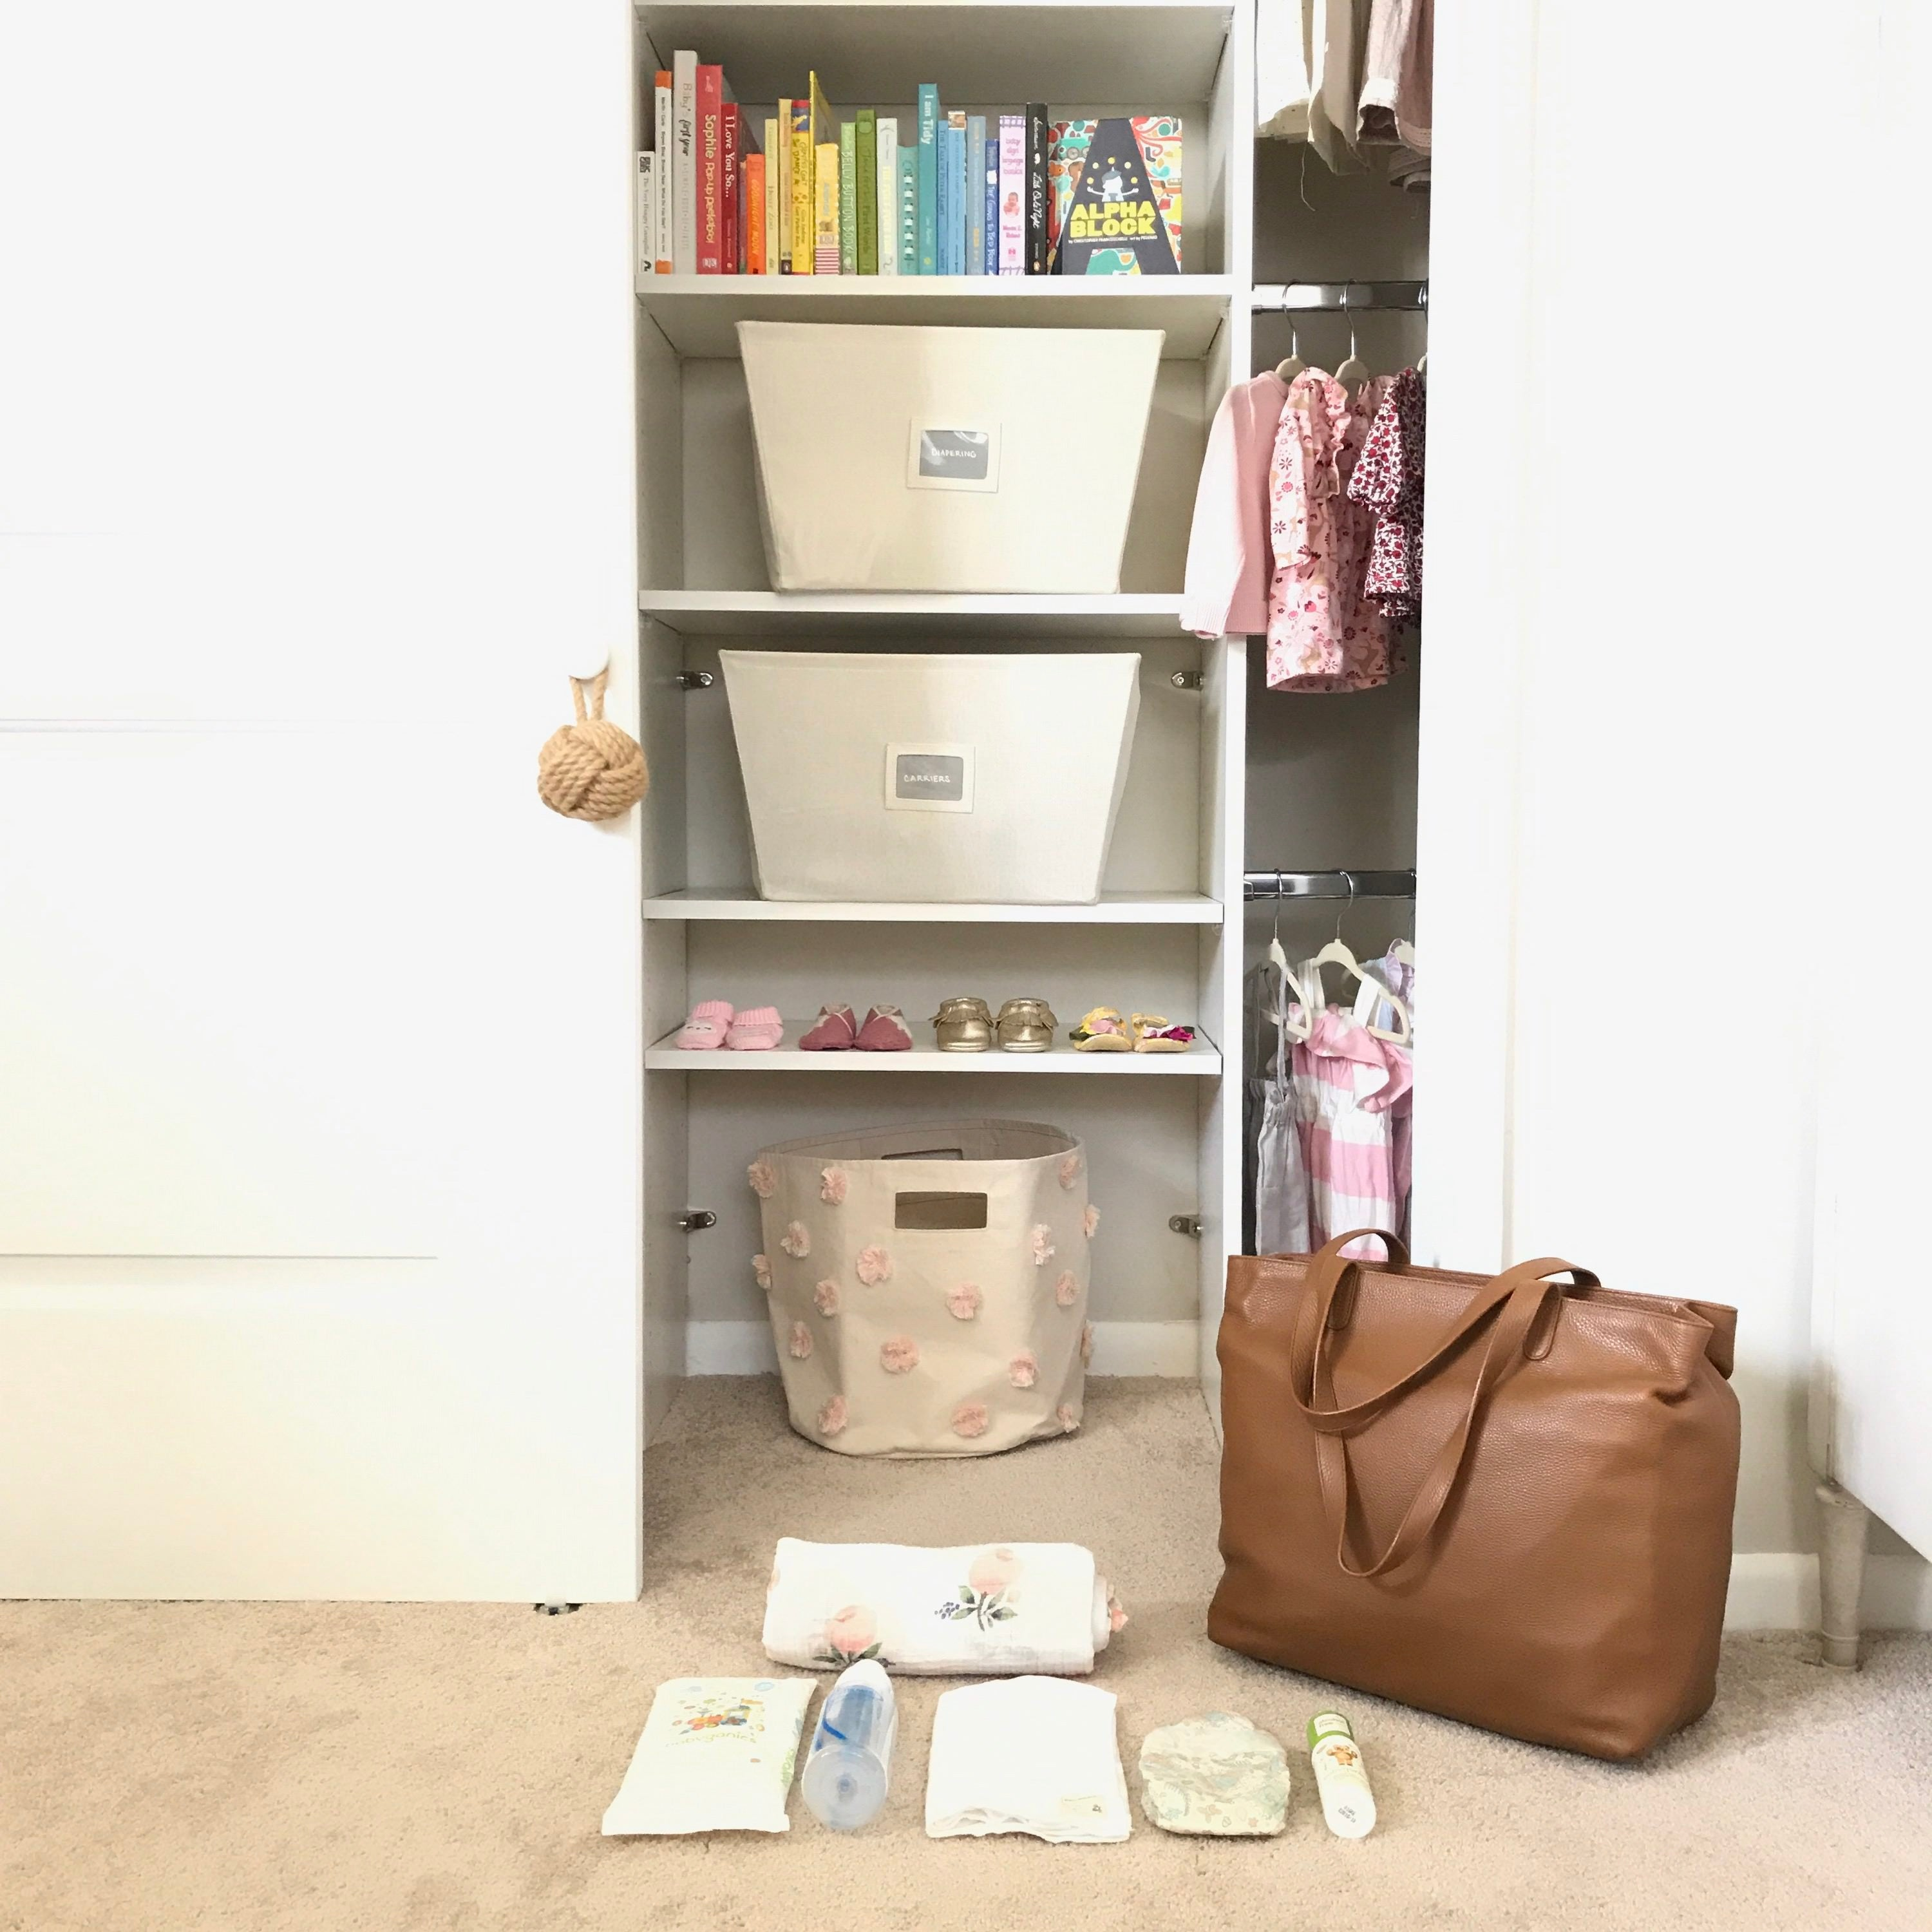 diaper bags, organized diaper bags, leather tote, leather bag, gym bag, cool gym bags, best new bags